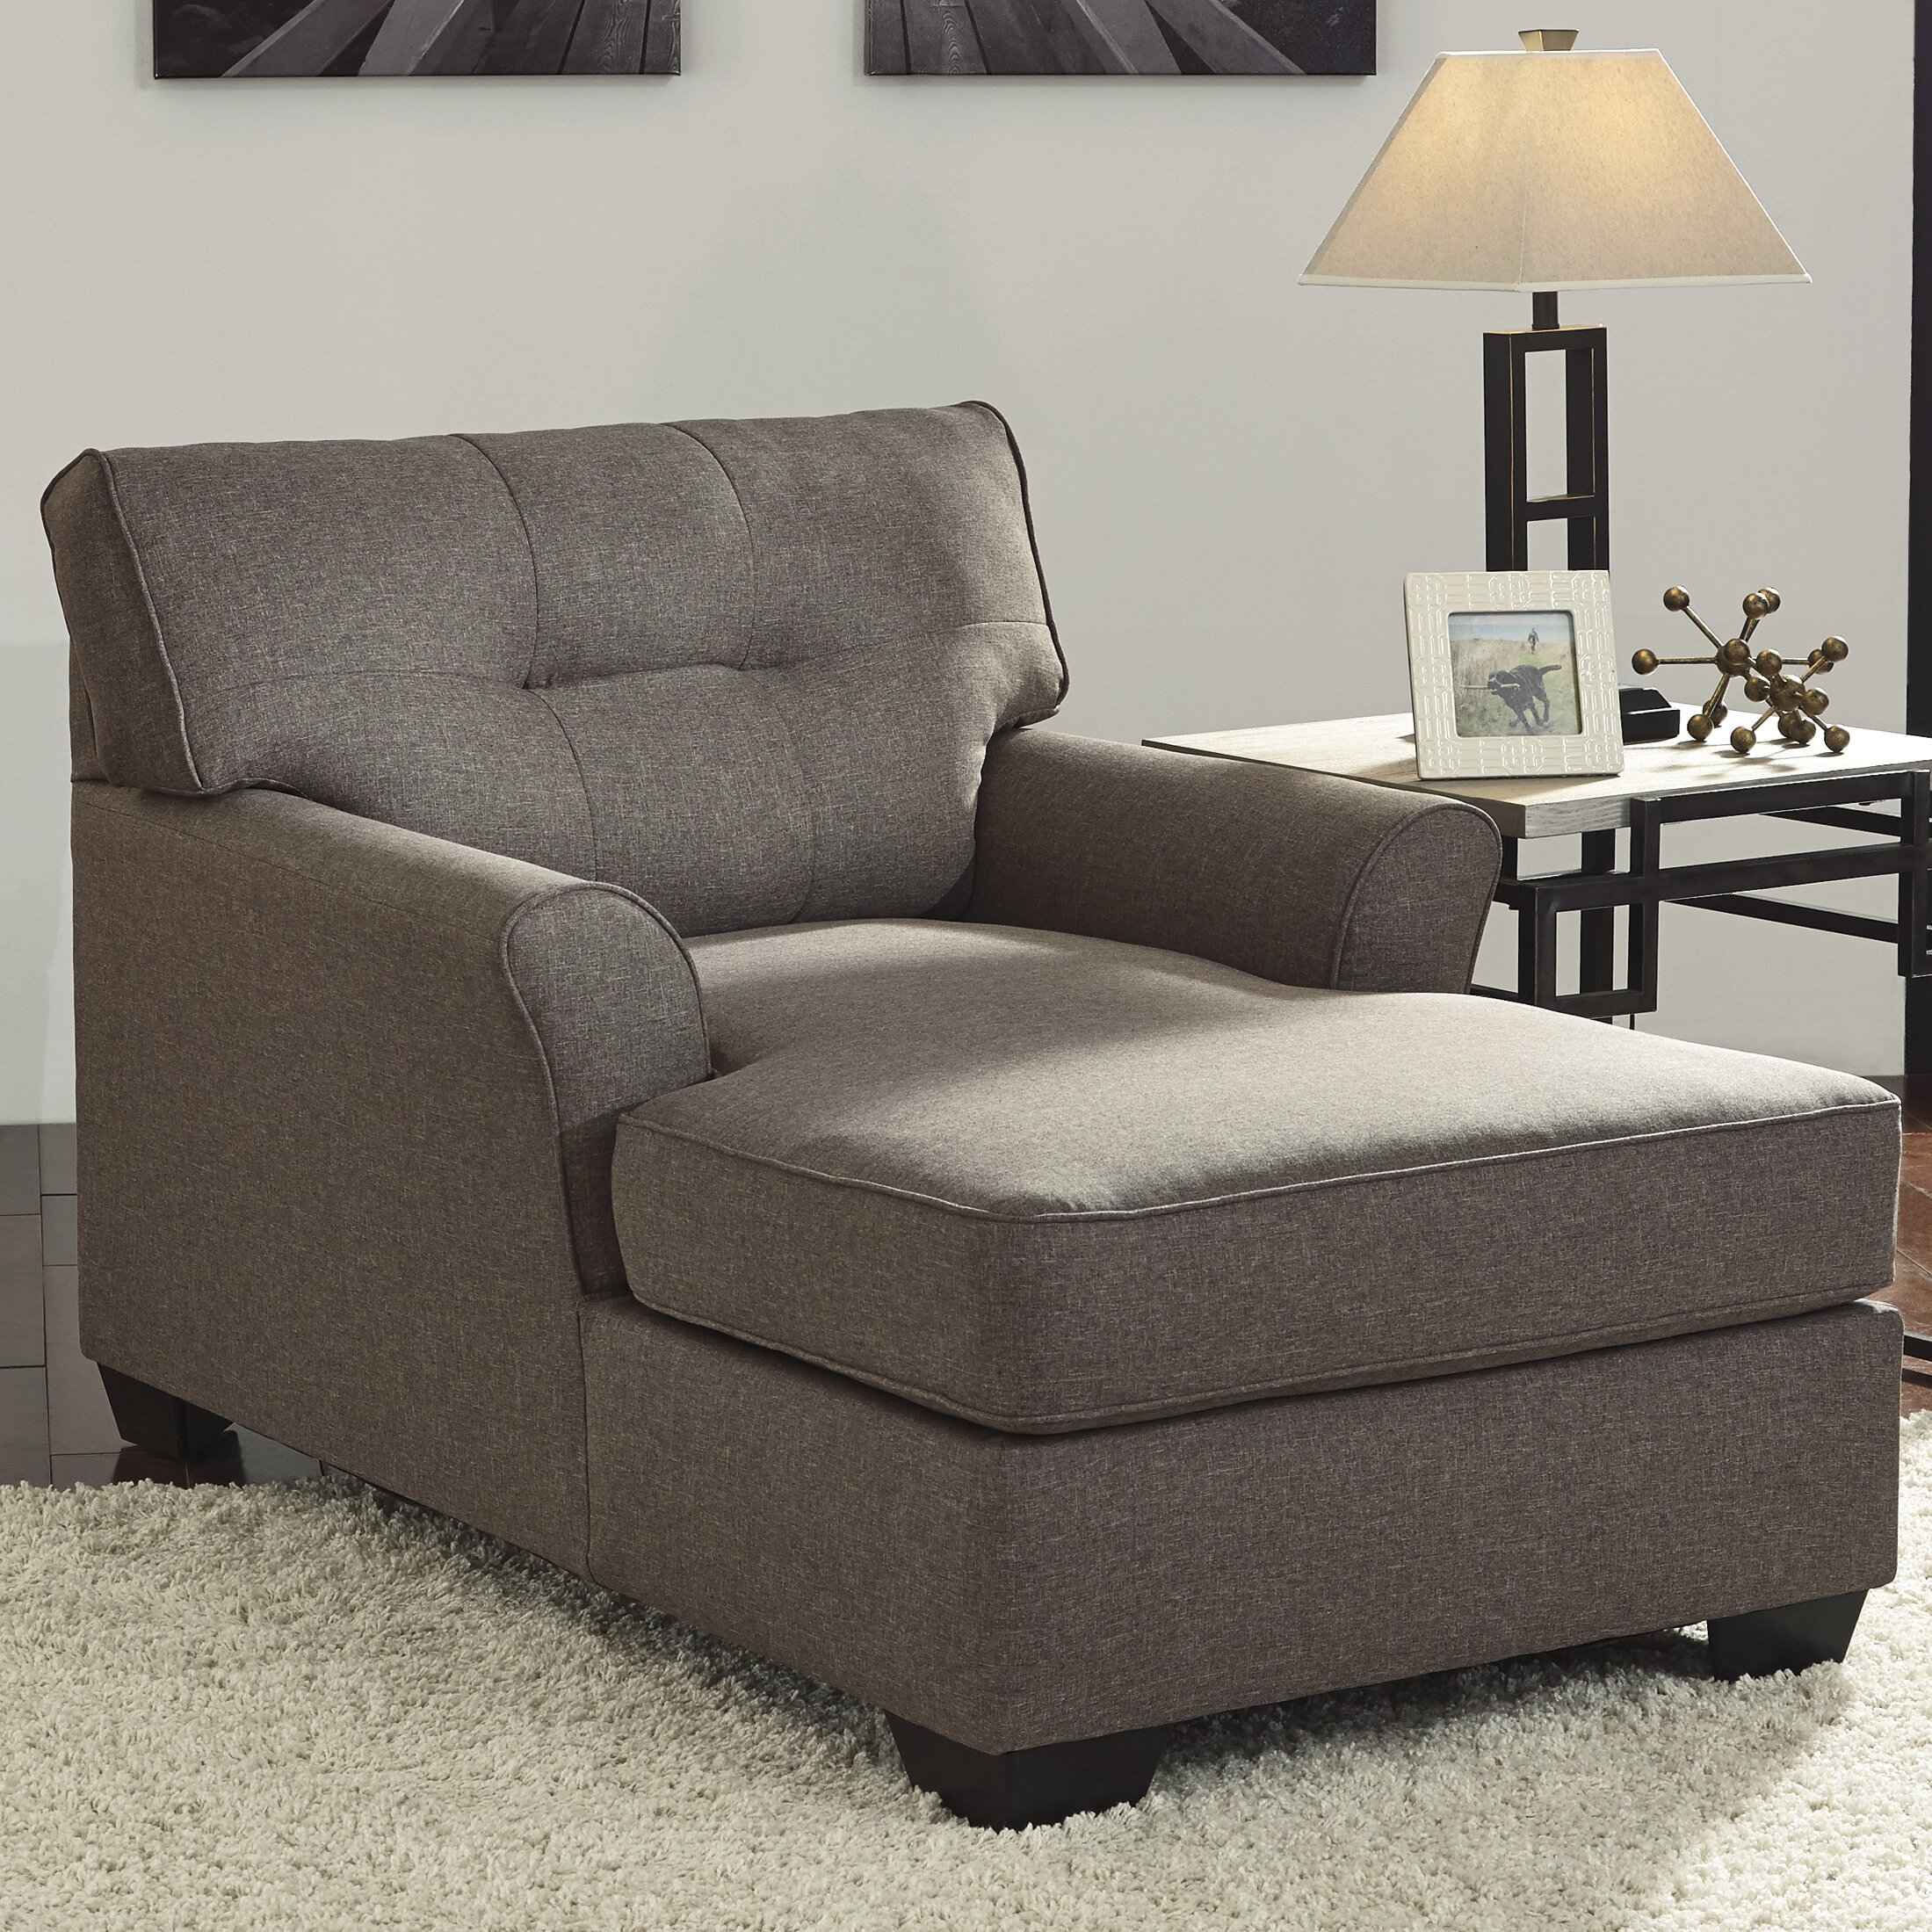 Signature design by ashley tibbee chaise lounge reviews for Lounge room furniture